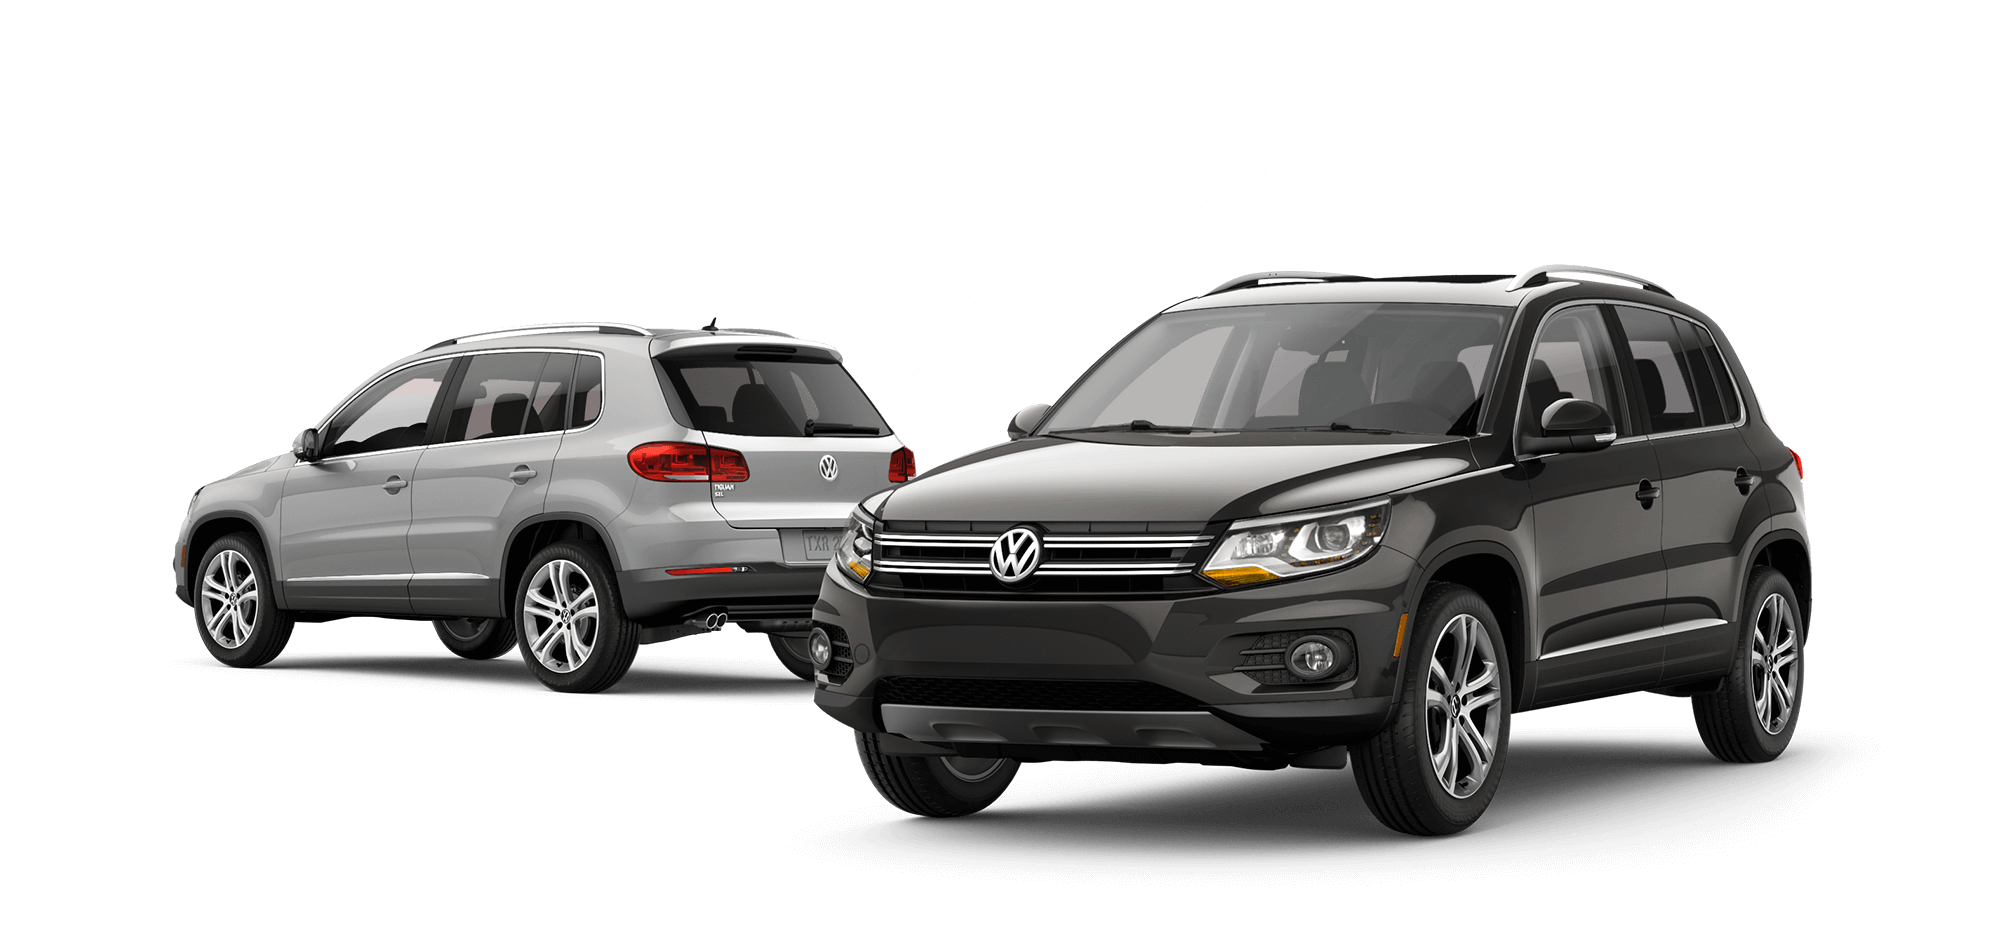 tiguan s pre volkswagen inventory awd toms certified suv used utility in sport owned